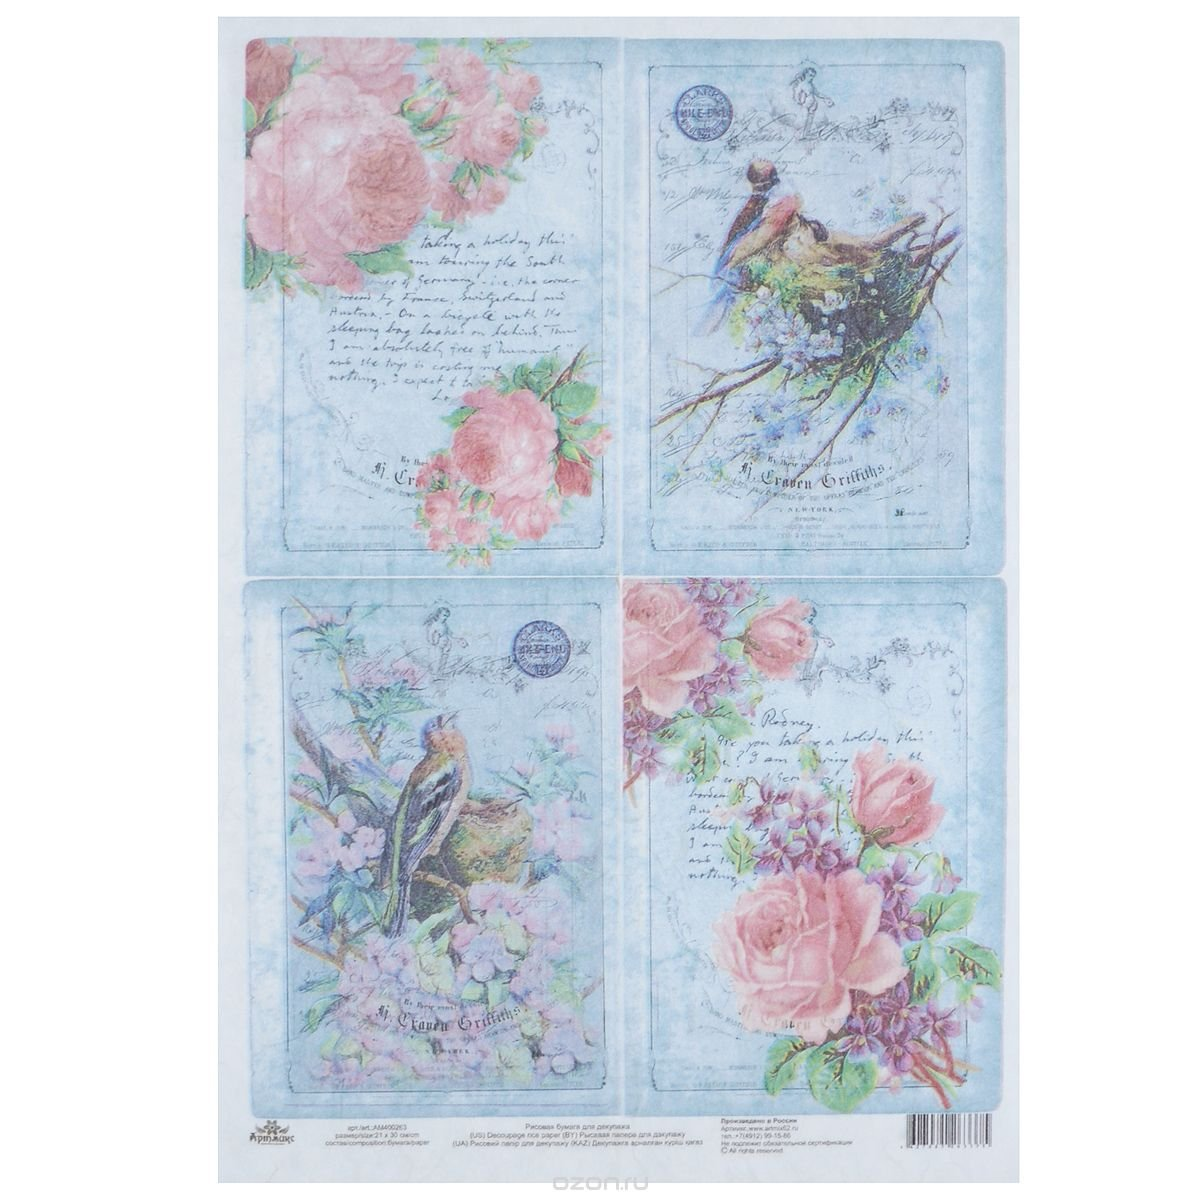 Rice Paper for decoupage. Beautiful Birds with Roses on Blue Background. A4 (8.27 × 11.69 inches). Made in Russia